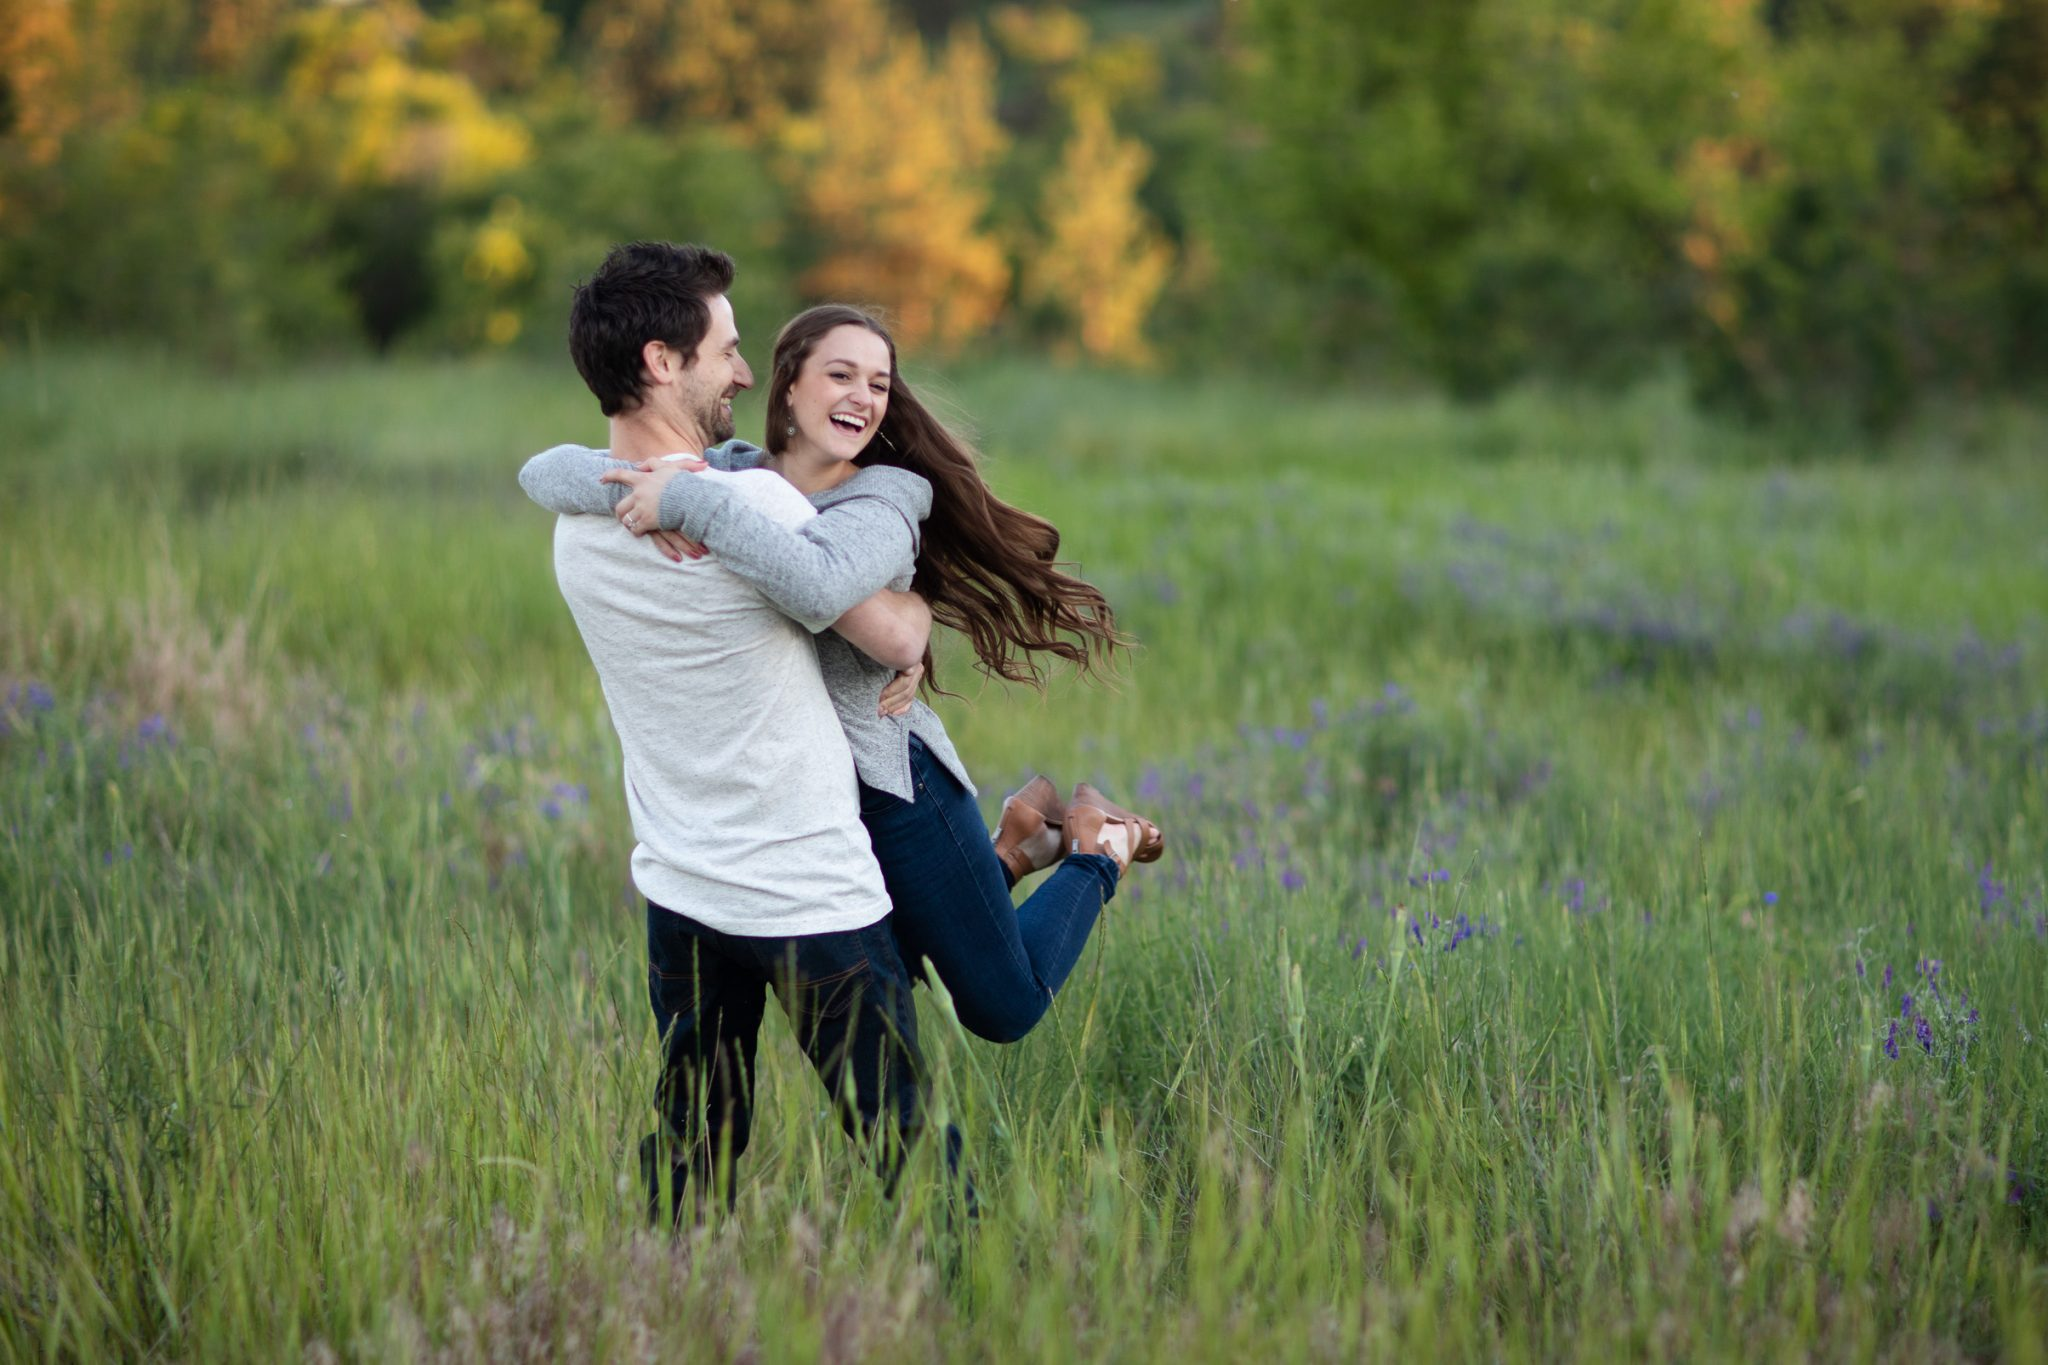 Engagement photographer Spokane WA